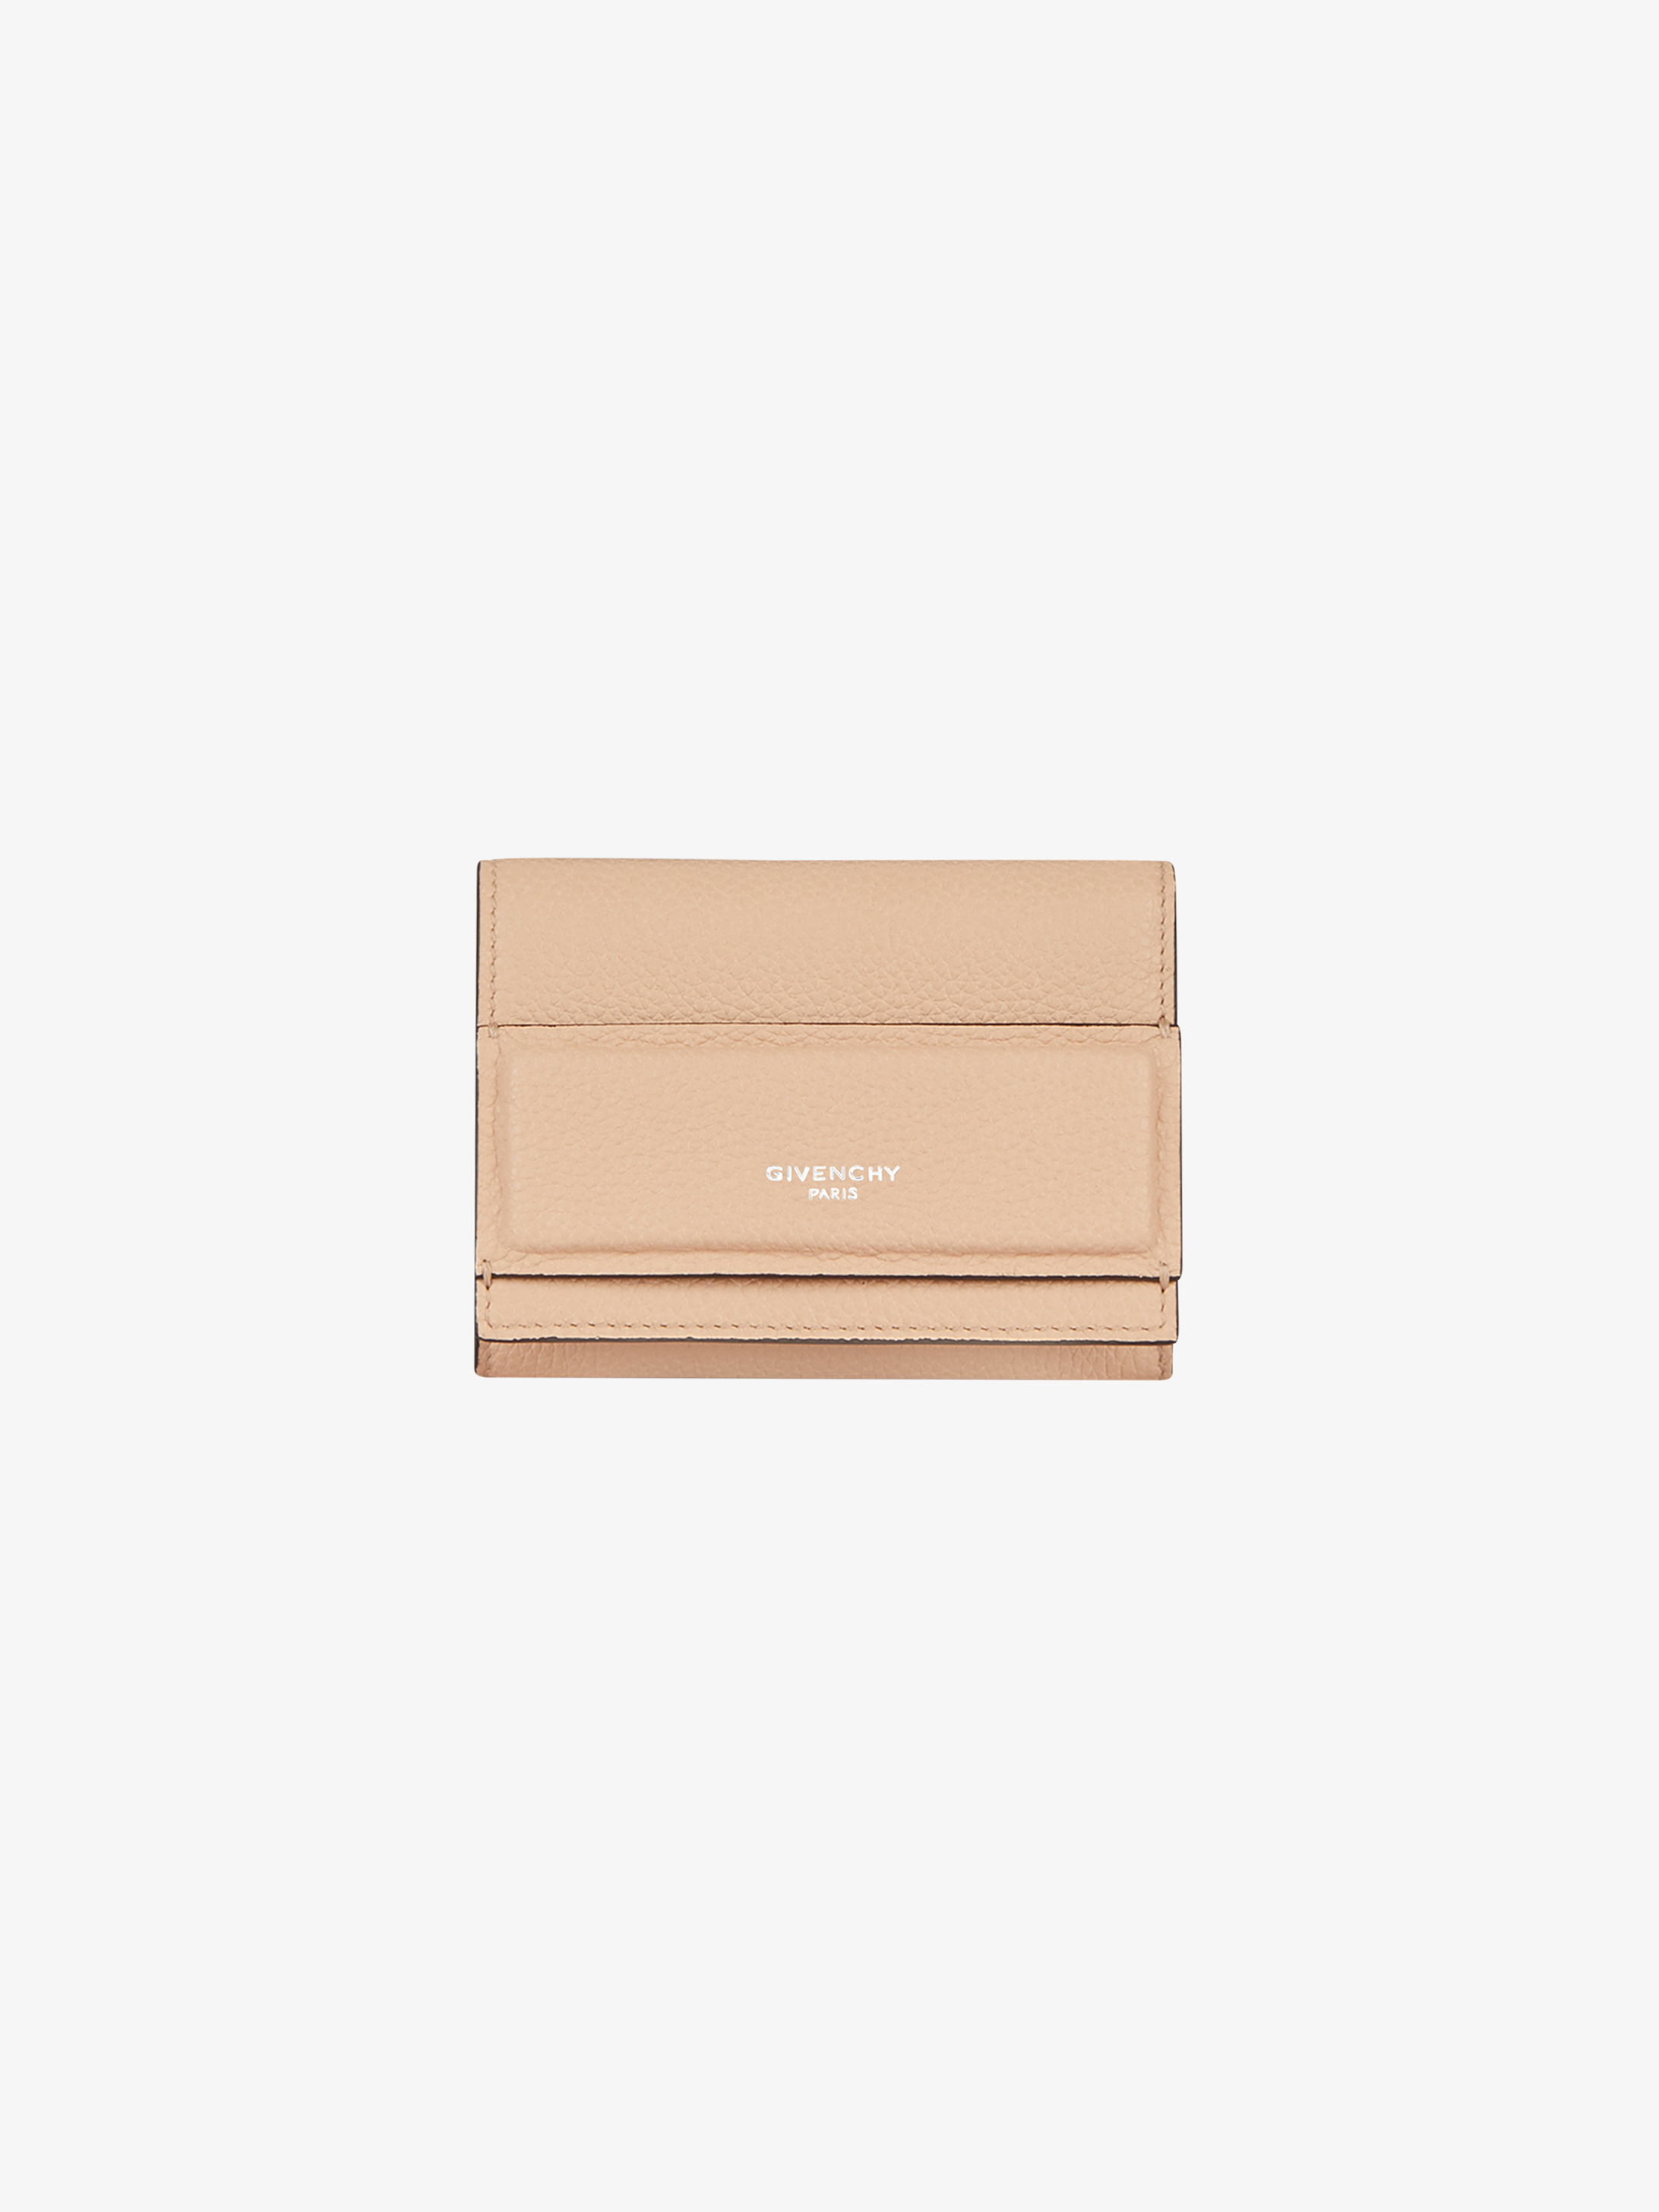 Horizon trifold wallet in grained leather